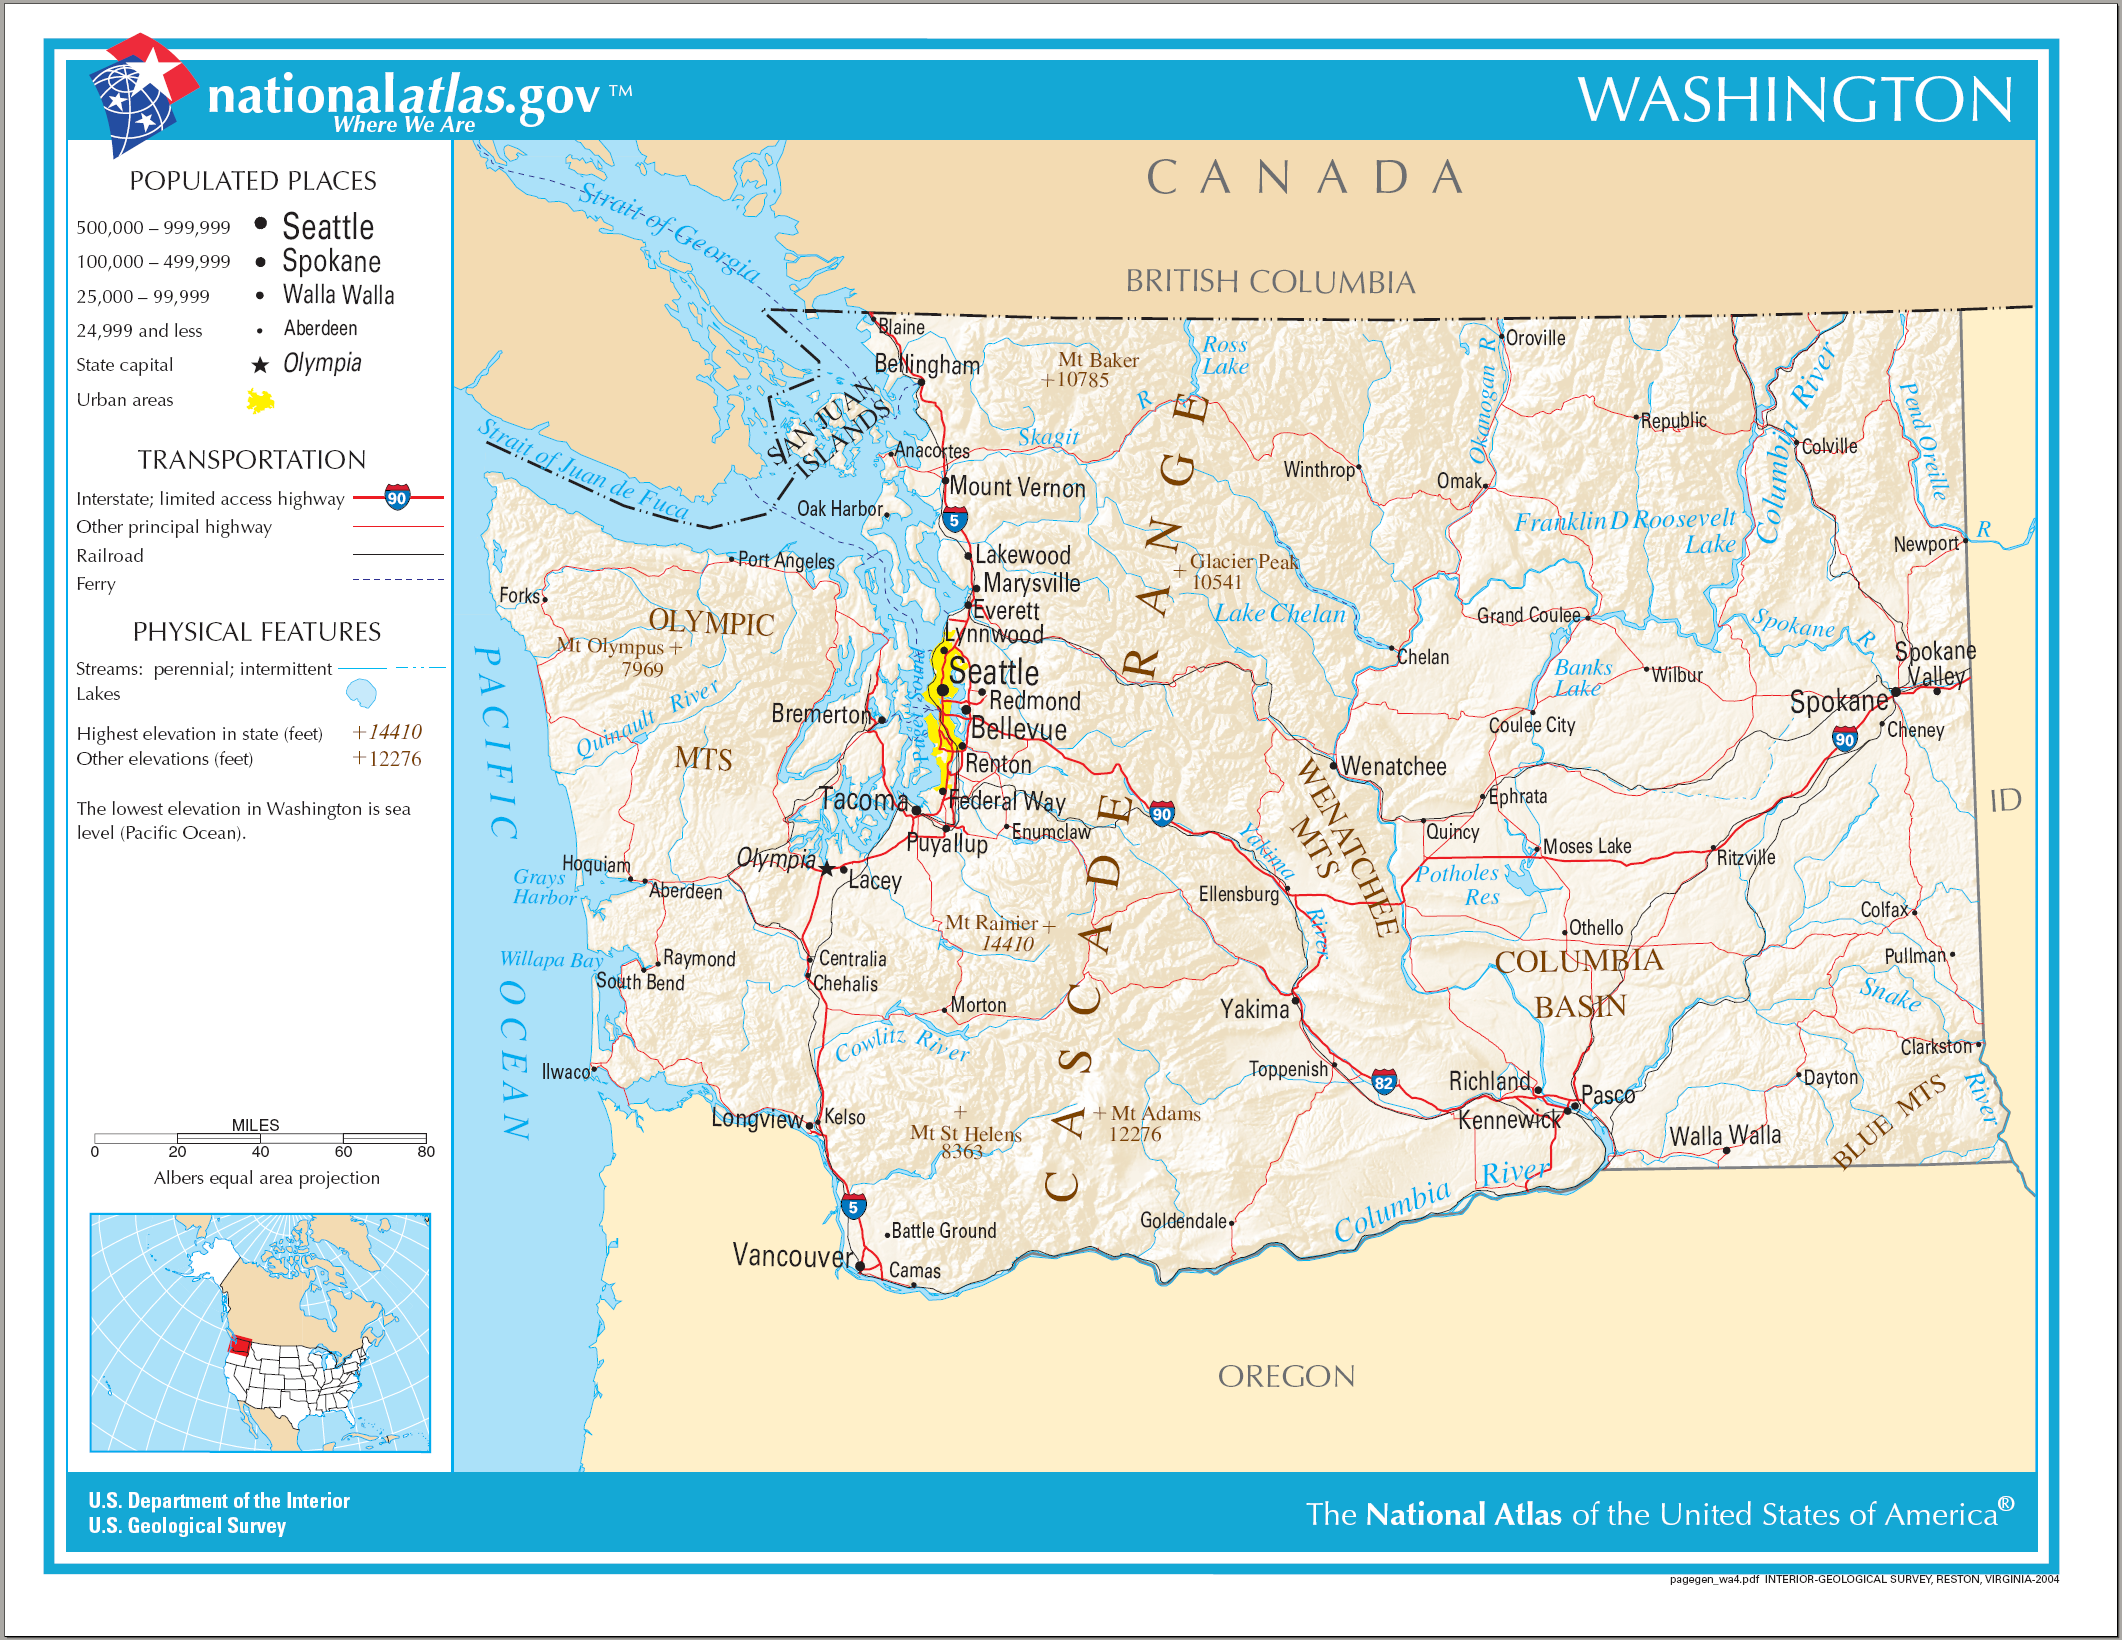 Washington (stato) - Wikipedia